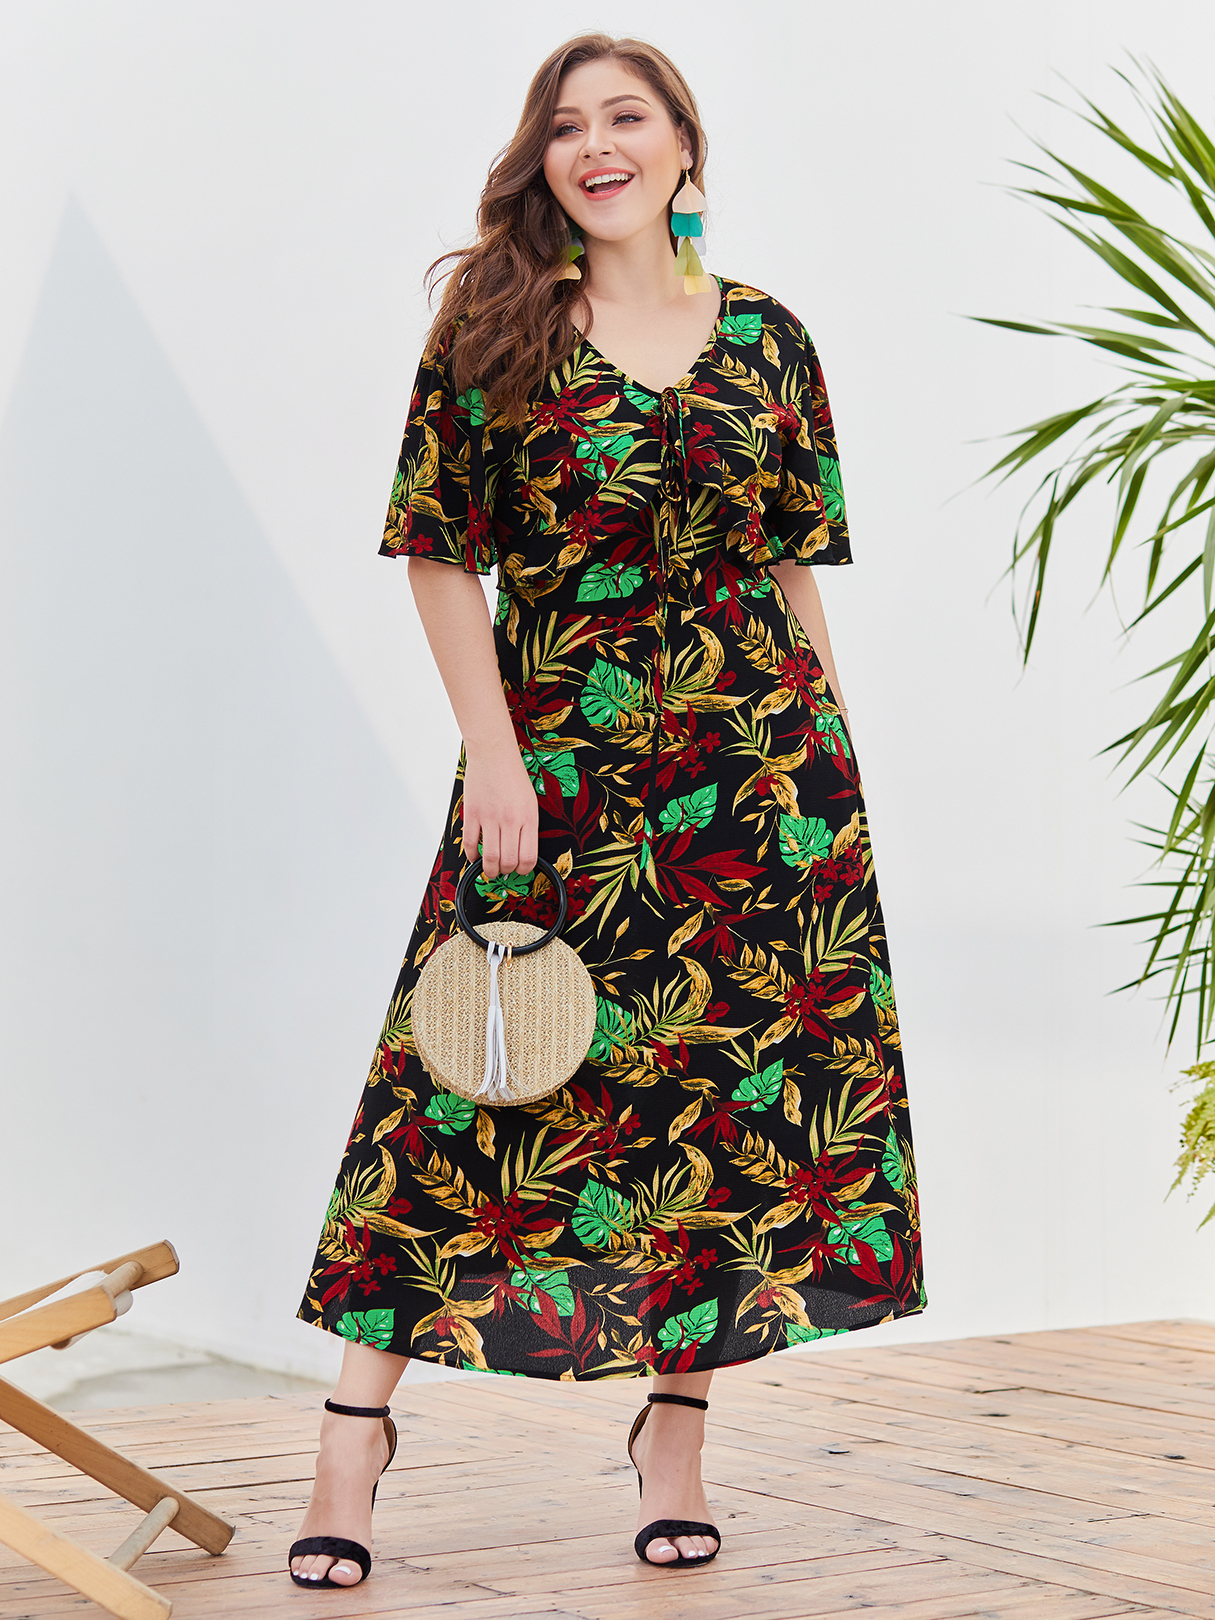 Plus Size Black Split Design Random Tropical Print V-neck Dress PLUS SIZE Noir DRESSES xl|xxl|3xl|4xl Yoins